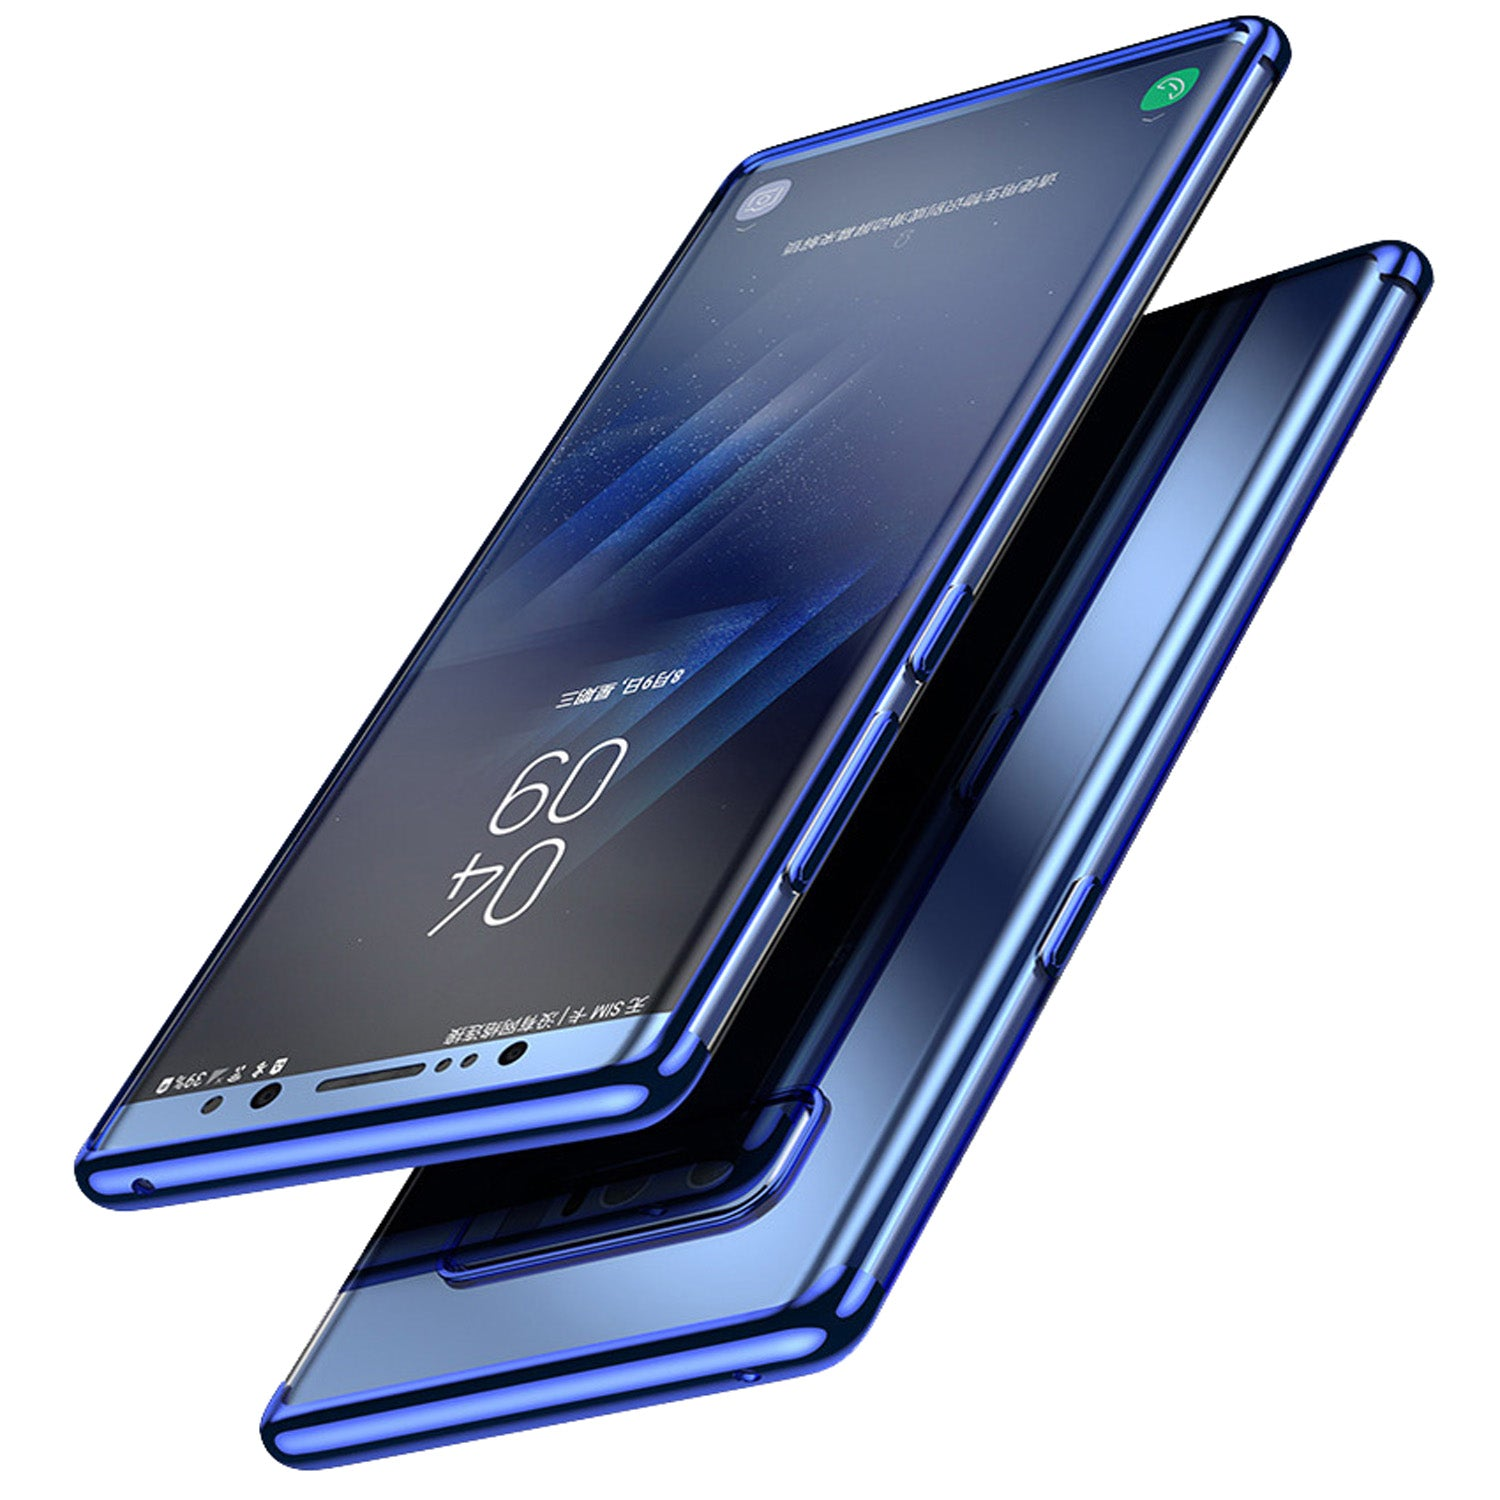 Chrome Plated Transparent Flexible Protective Case Cover for Samsung Galaxy Note 8 - Blue - Mobizang